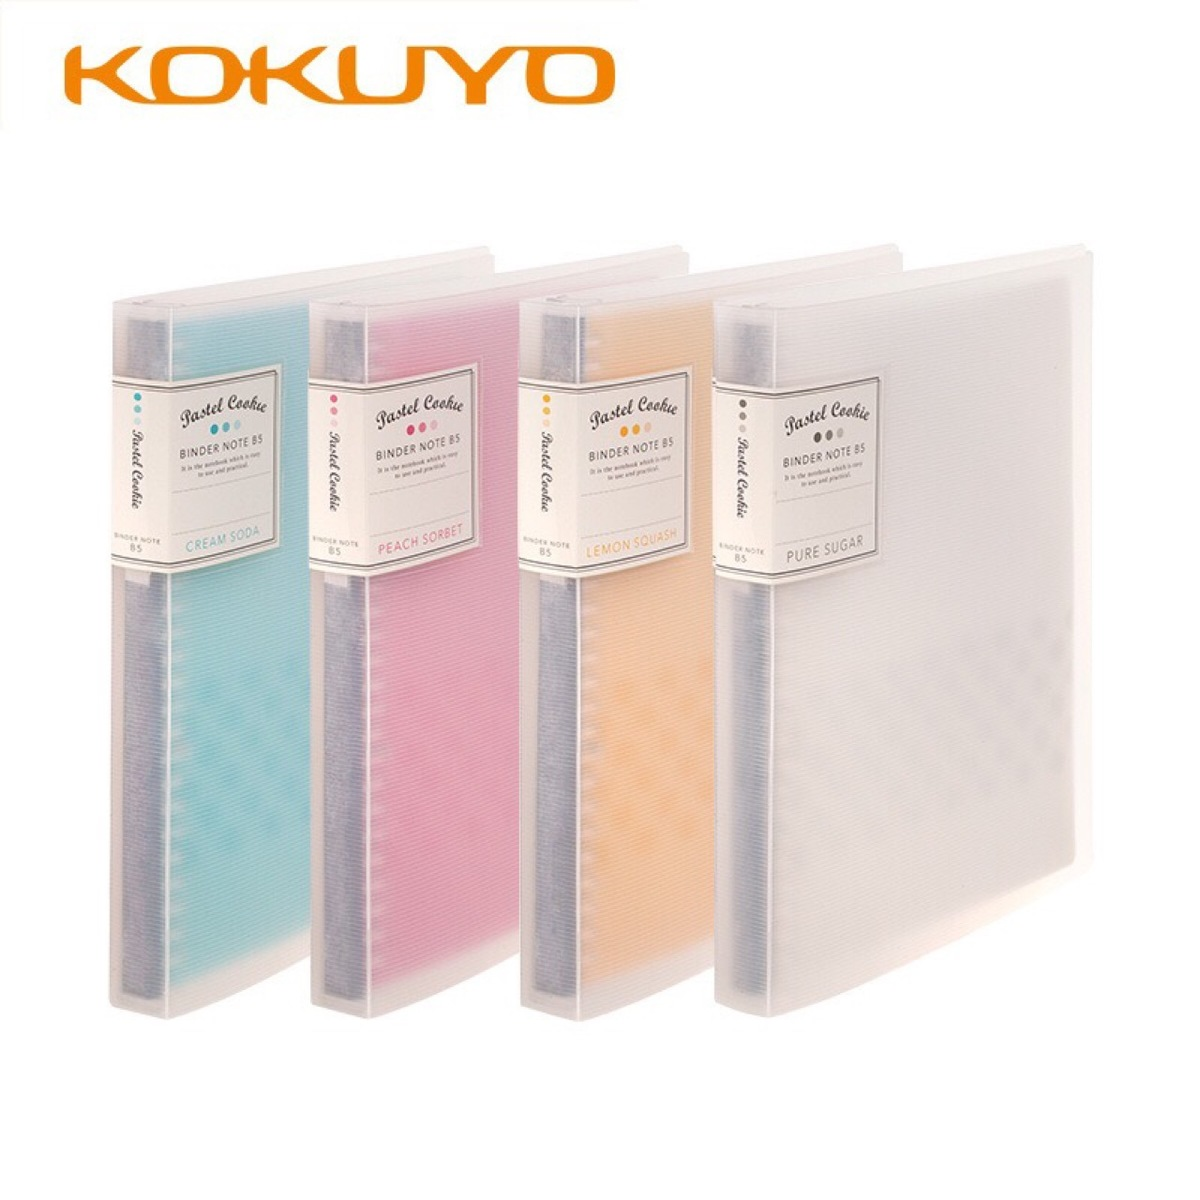 KOKUYO A5 B5 Removable Loose Leaf Notebook Refill Spiral Binder Planner Inner Page Inside Paper Dairy Weekly Monthly Plan LineKOKUYO A5 B5 Removable Loose Leaf Notebook Refill Spiral Binder Planner Inner Page Inside Paper Dairy Weekly Monthly Plan Line